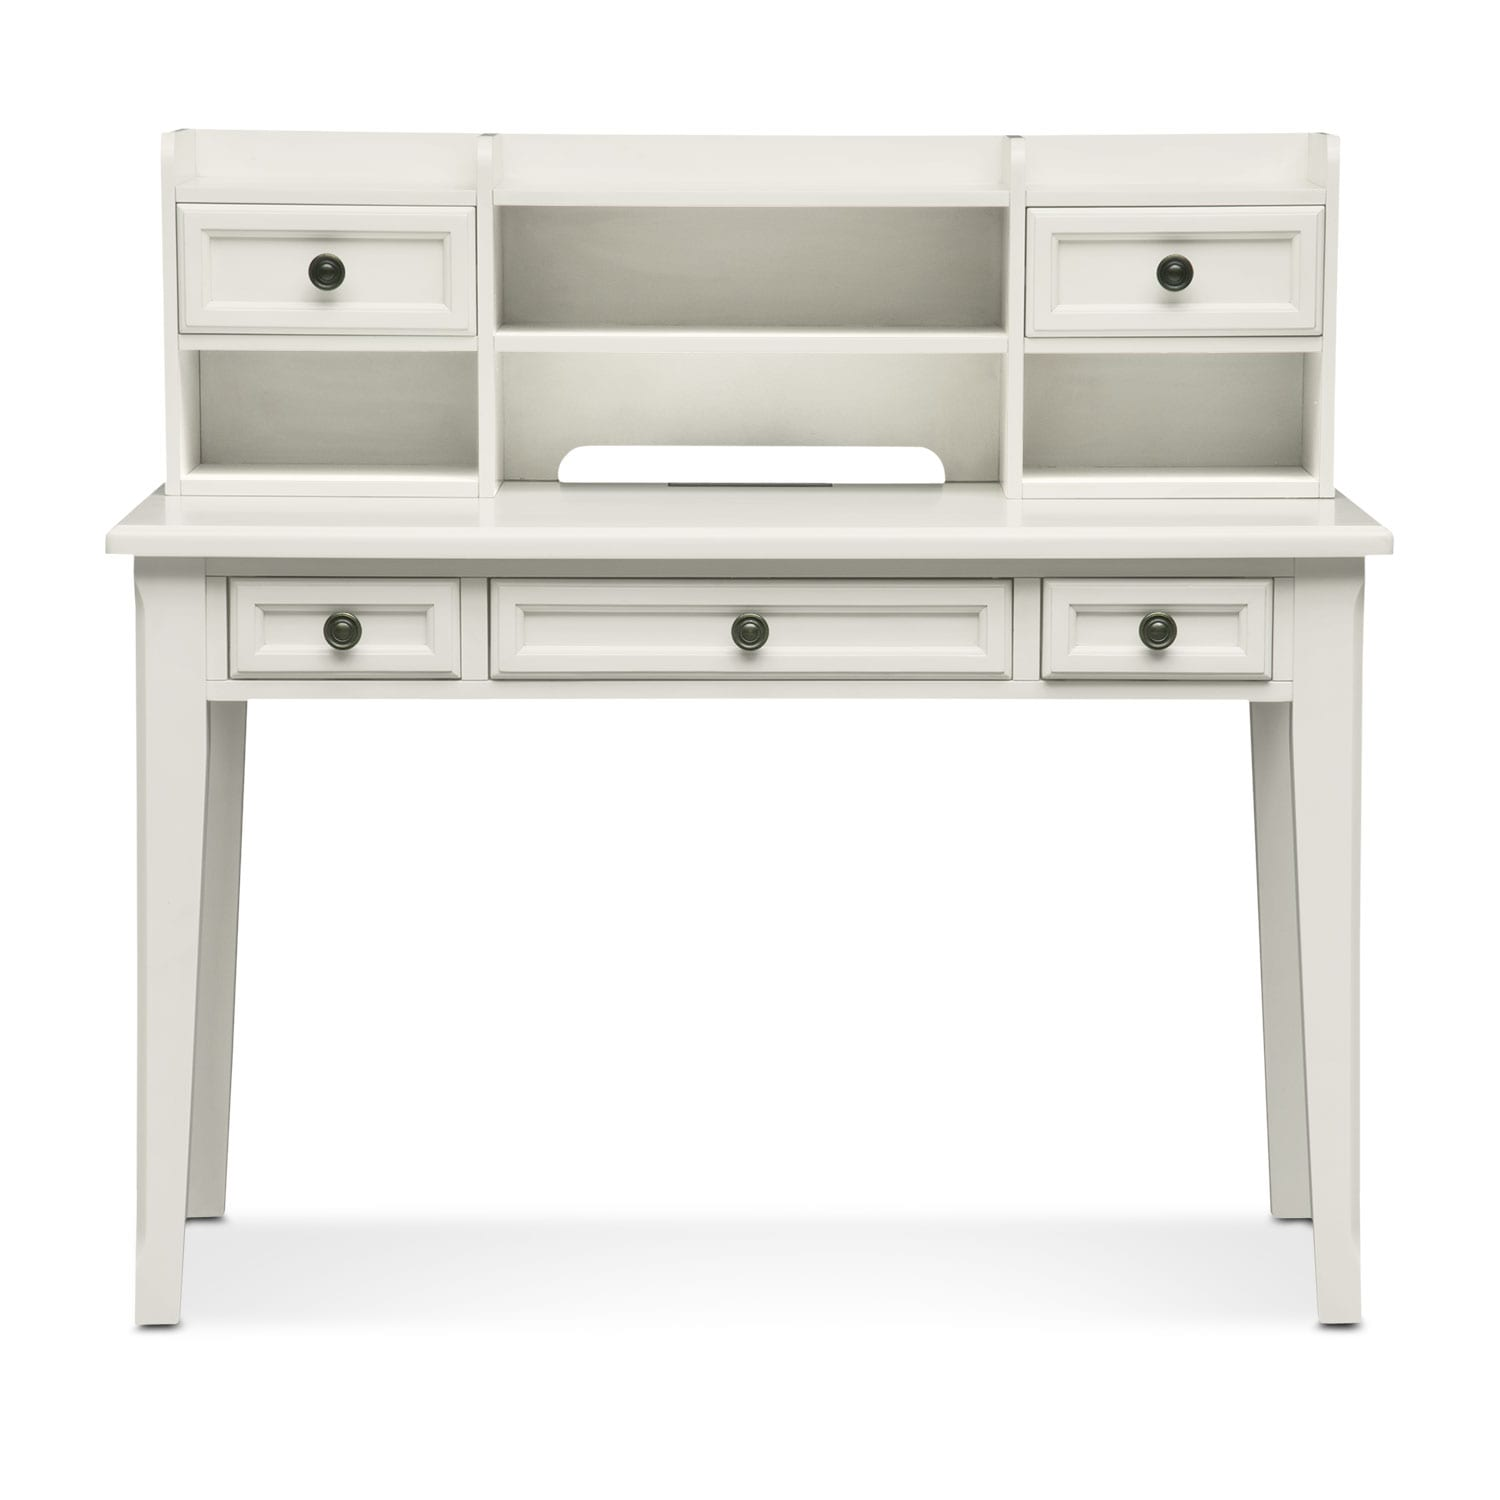 American Signature Furniture Track My Order: Hanover Youth Desk And Hutch - White